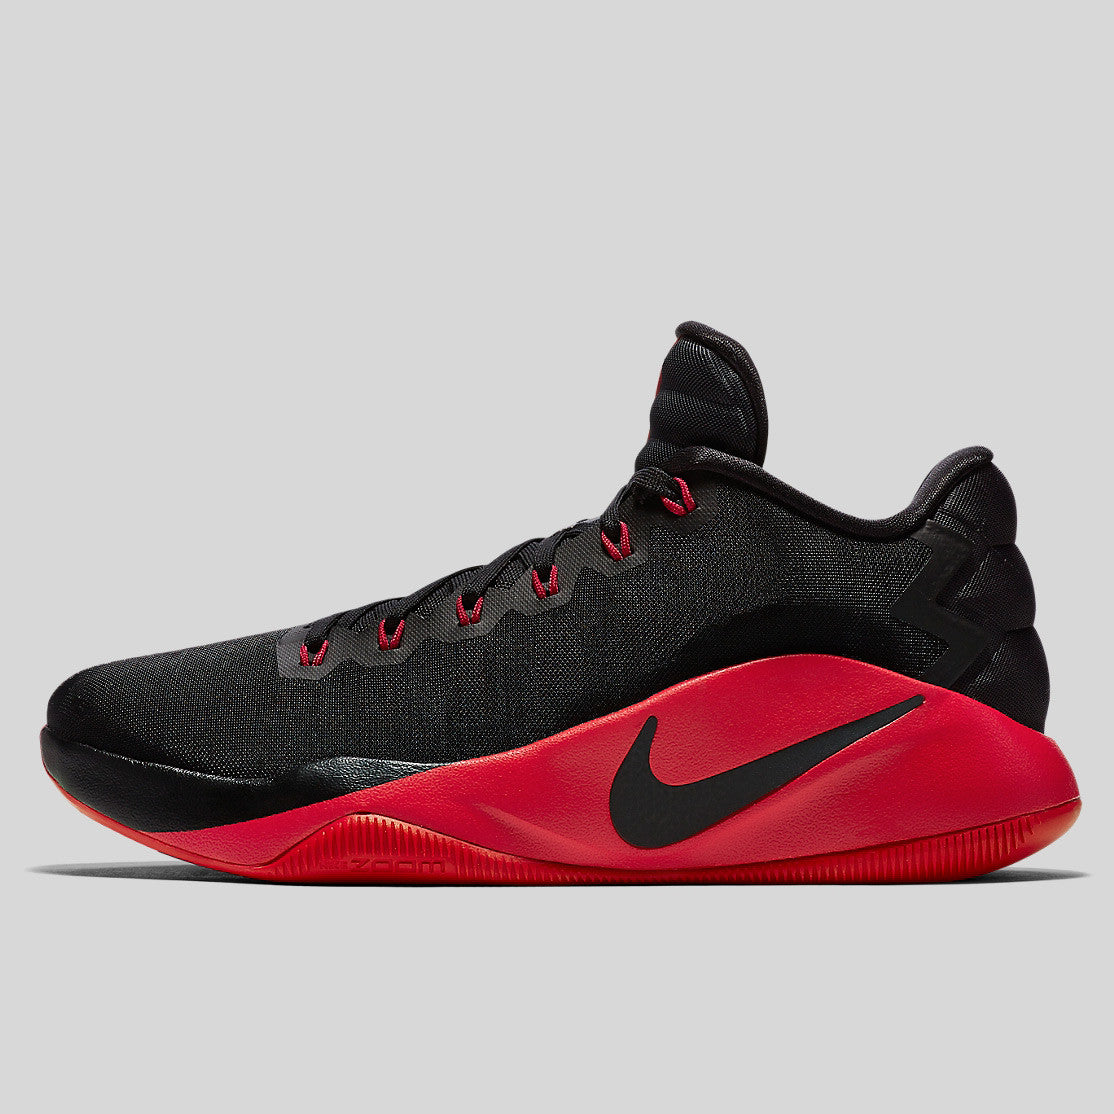 sports shoes 8ed61 fb10a Nike Hyperdunk 2016 Low EP Black University Red Dark Grey (844364-060)